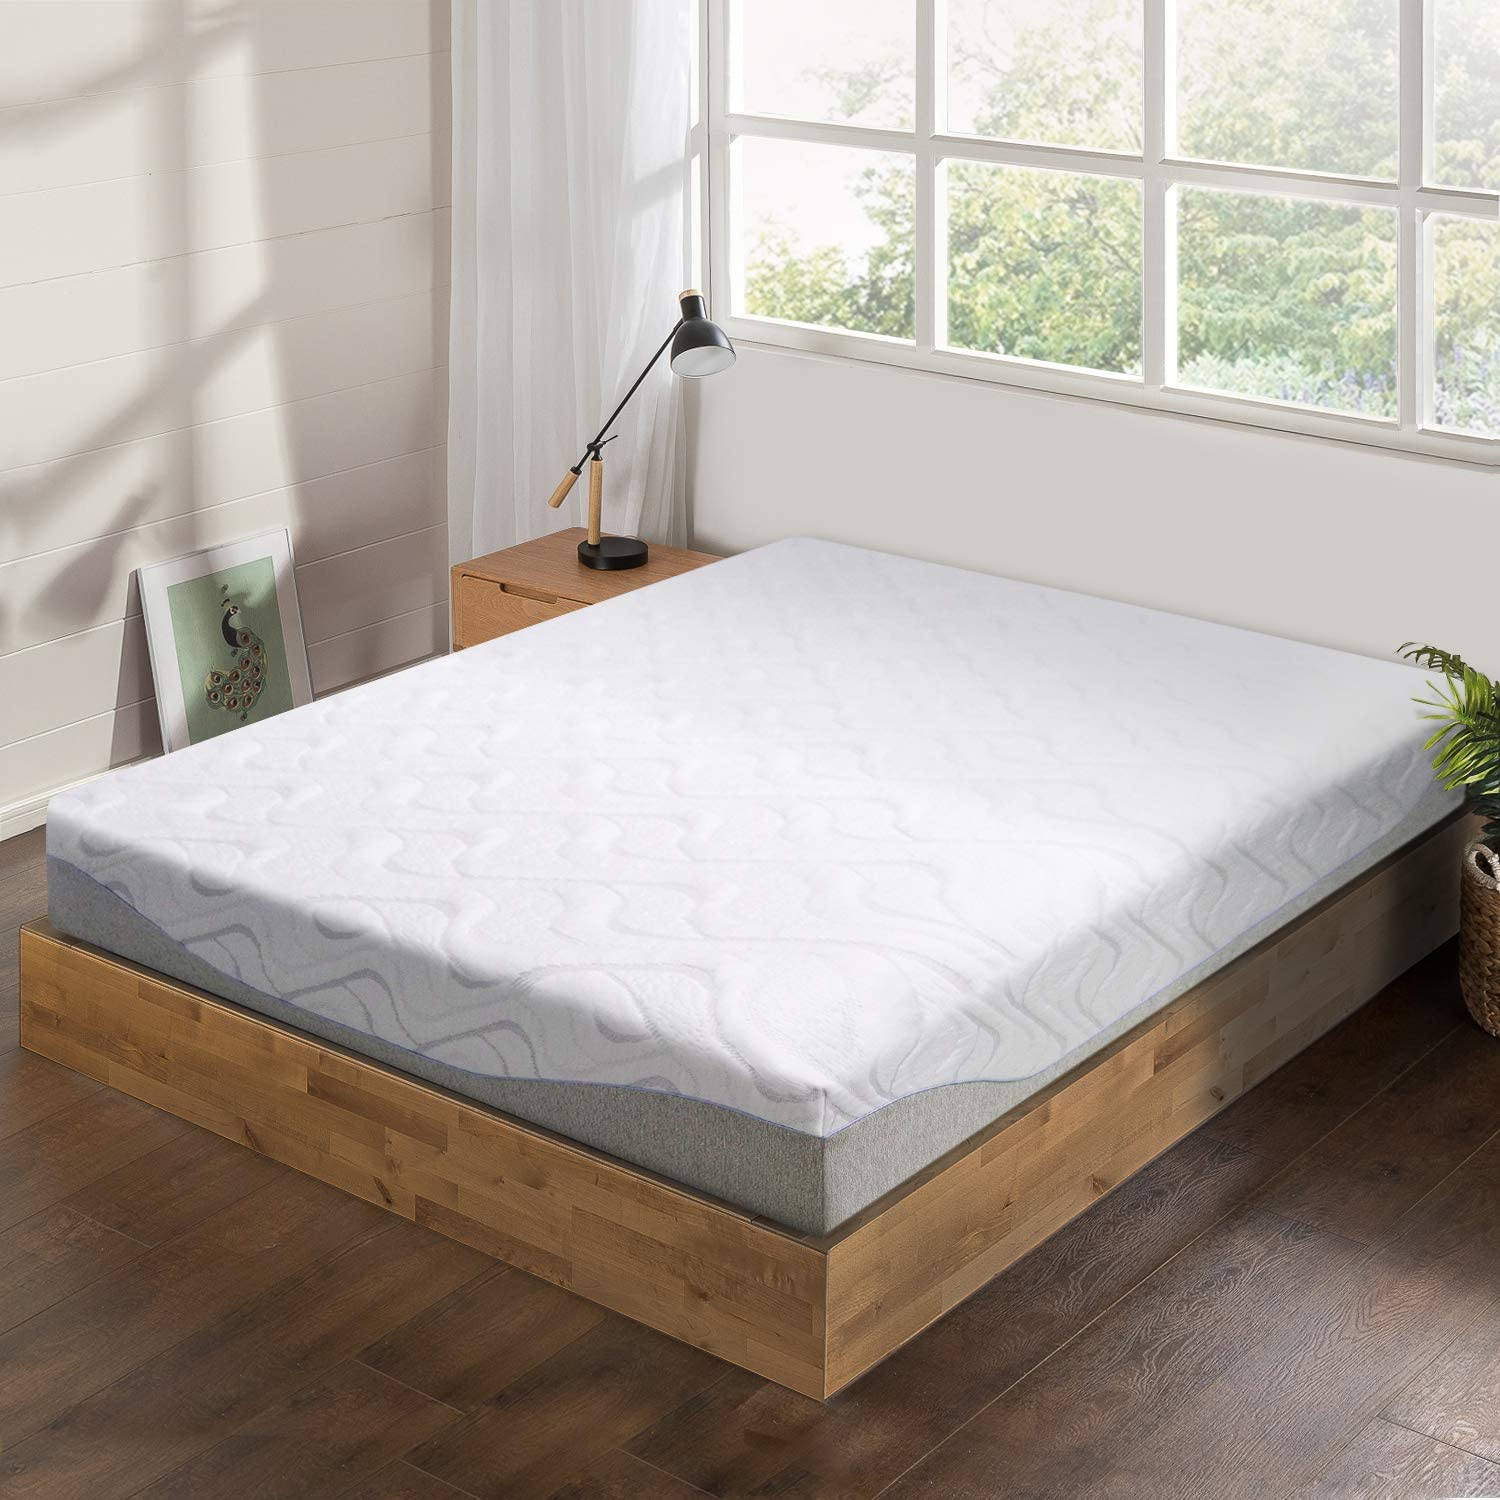 "Best Price Mattress 9"" Gel-Infused Memory Foam Mattress - Queen"